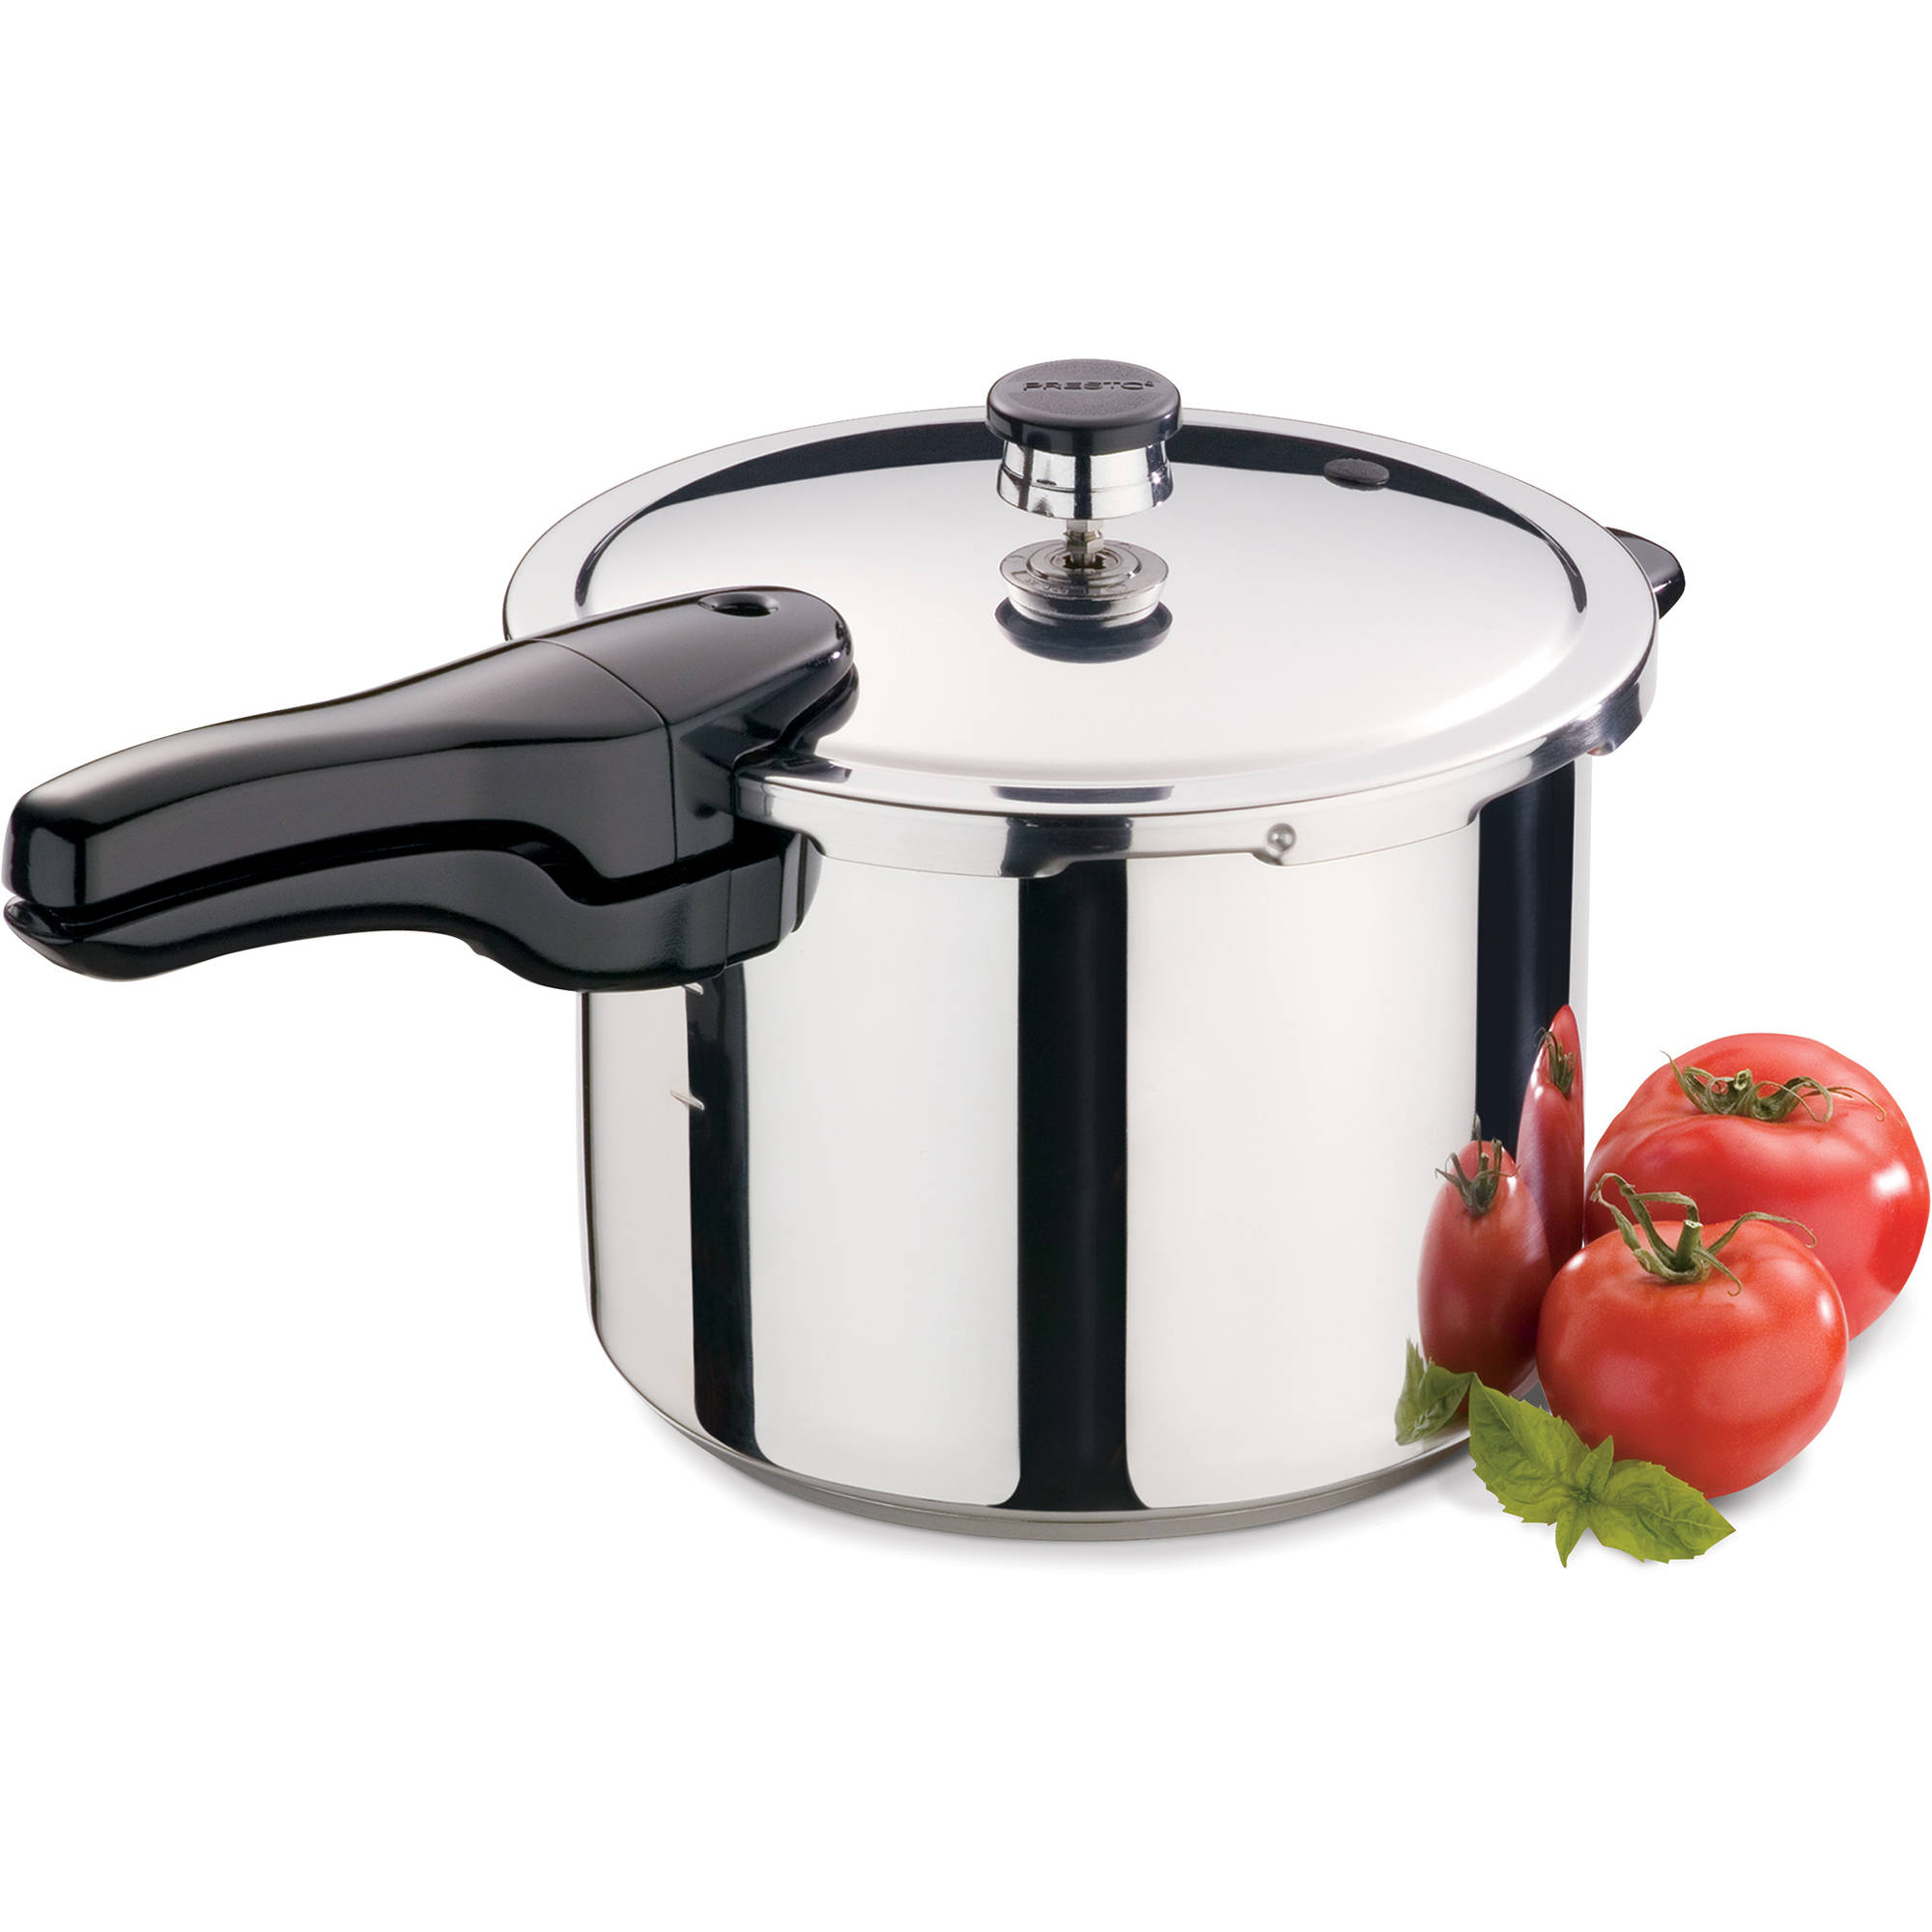 Presto 6-Quart Pressure Cooker, Stainless Steel